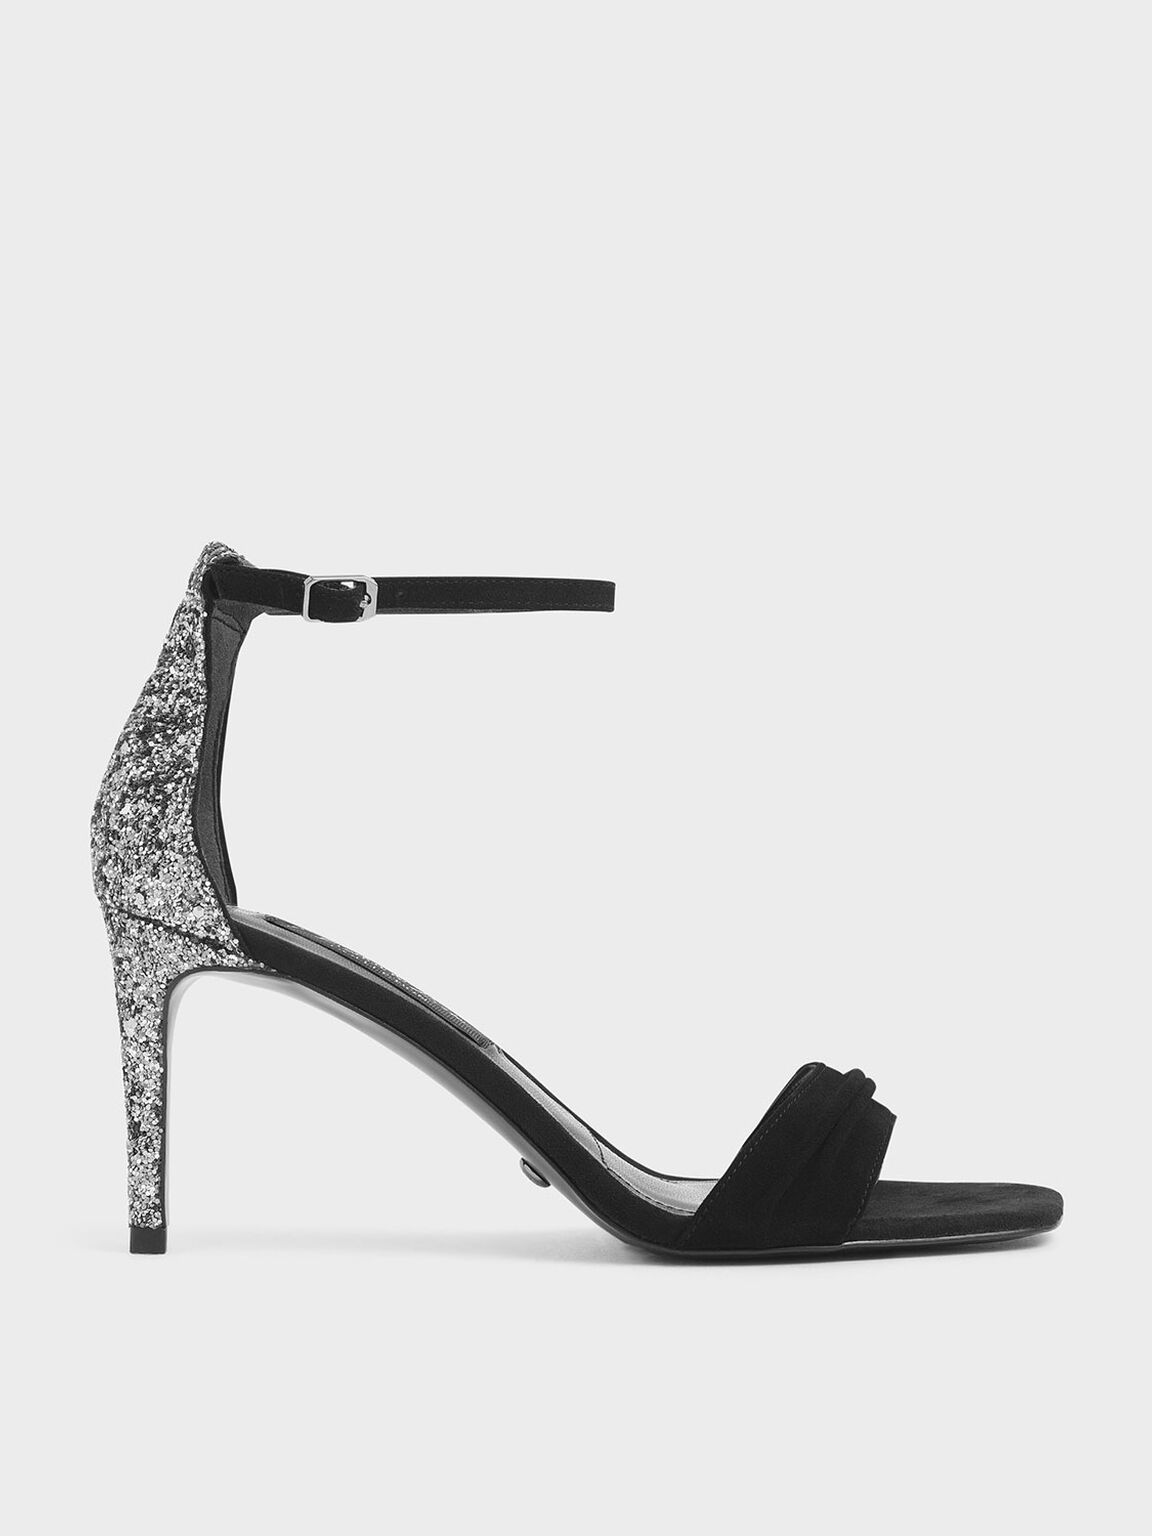 Glitter Stiletto Heel Sandals (Kid Suede), Black, hi-res